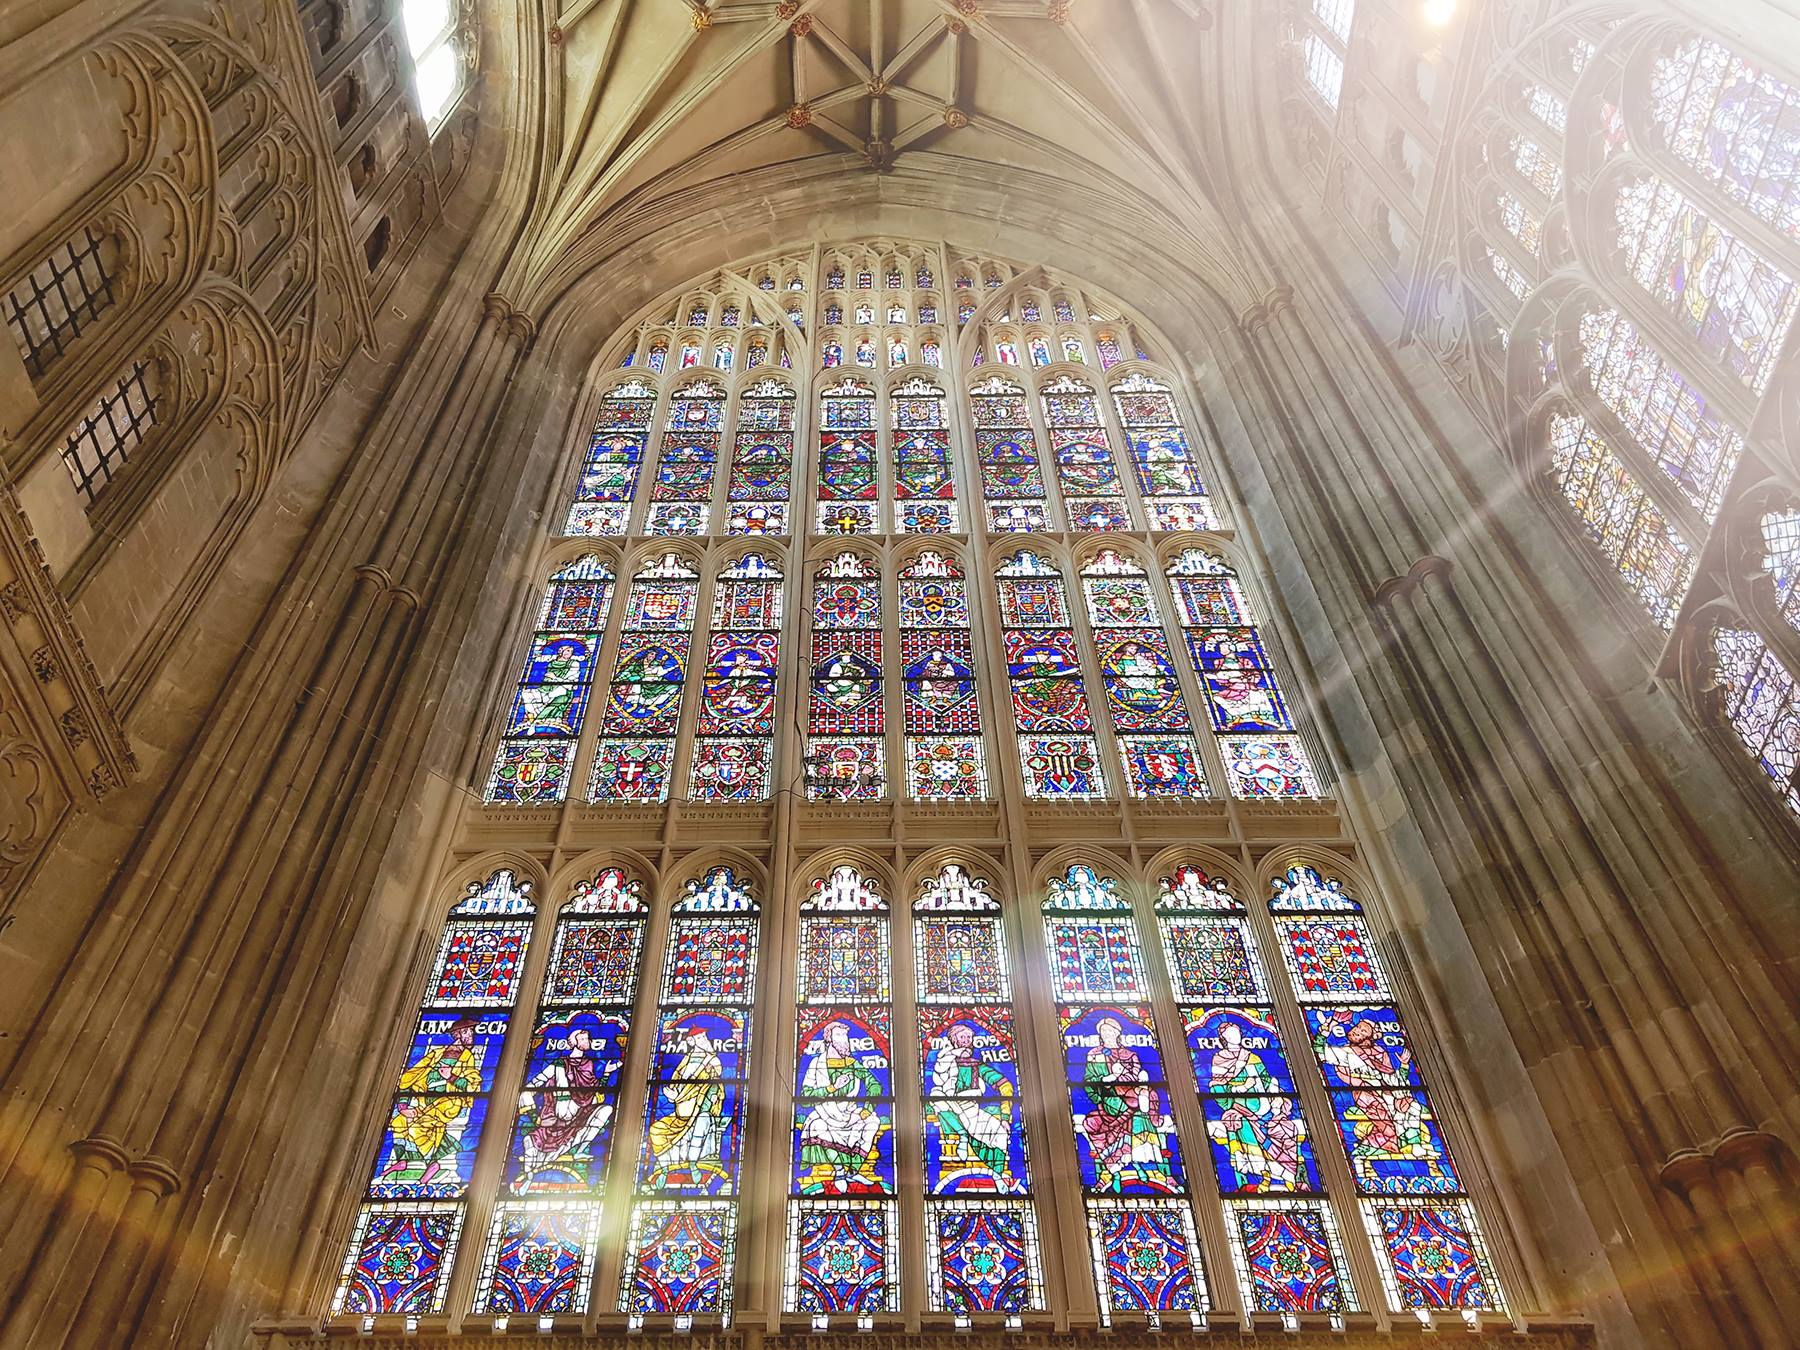 UNESCO, world heritage site, Canterbury Cathedral, world famous, history,